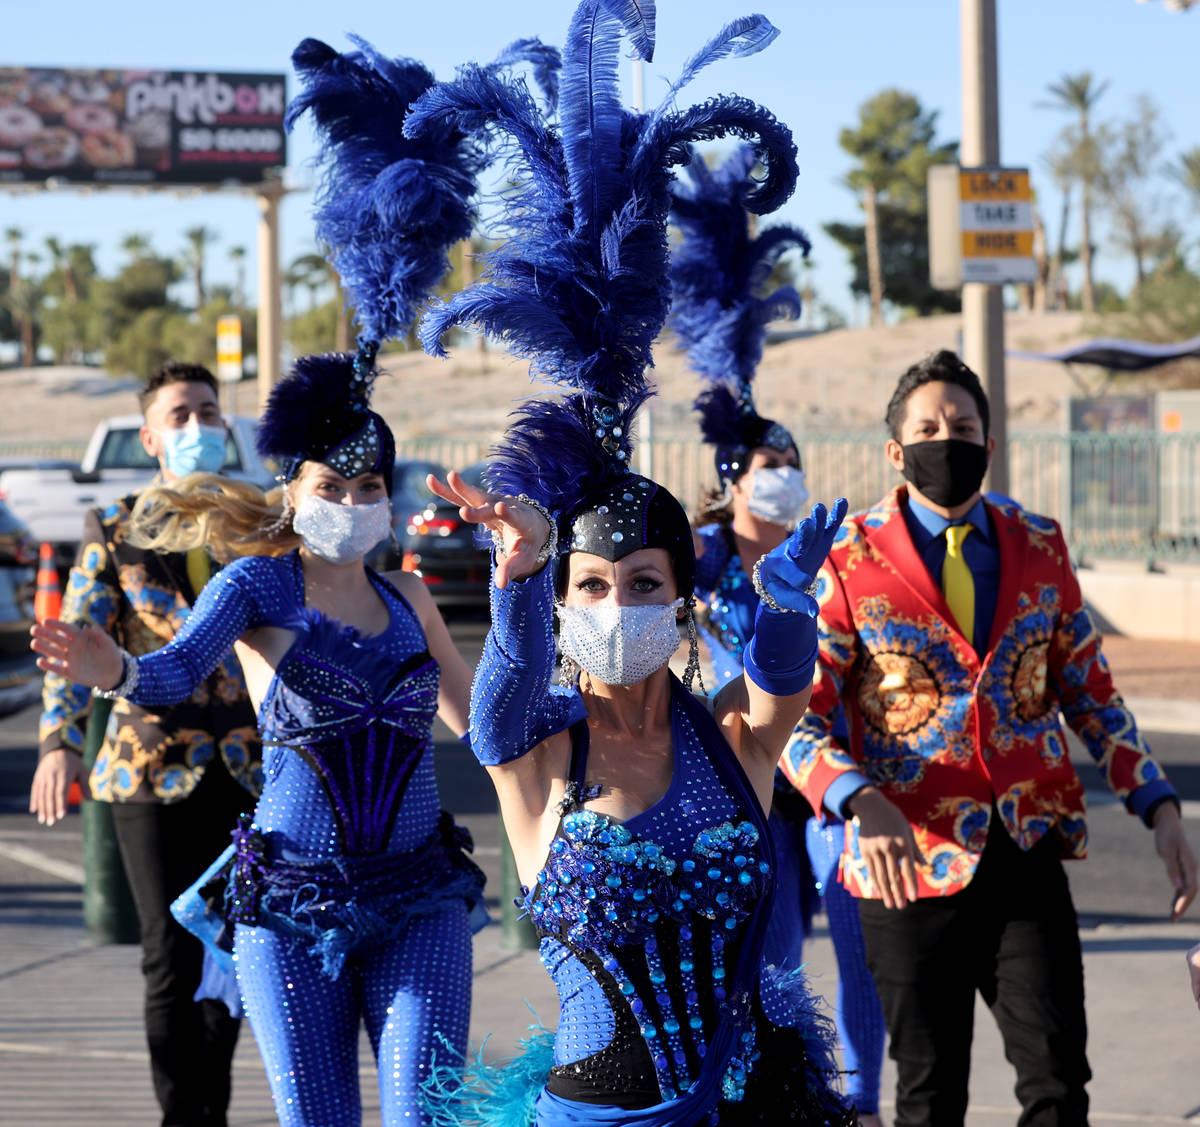 Las Vegas performers, celebrities, entertainers and business people kick off a multi-city tour ...